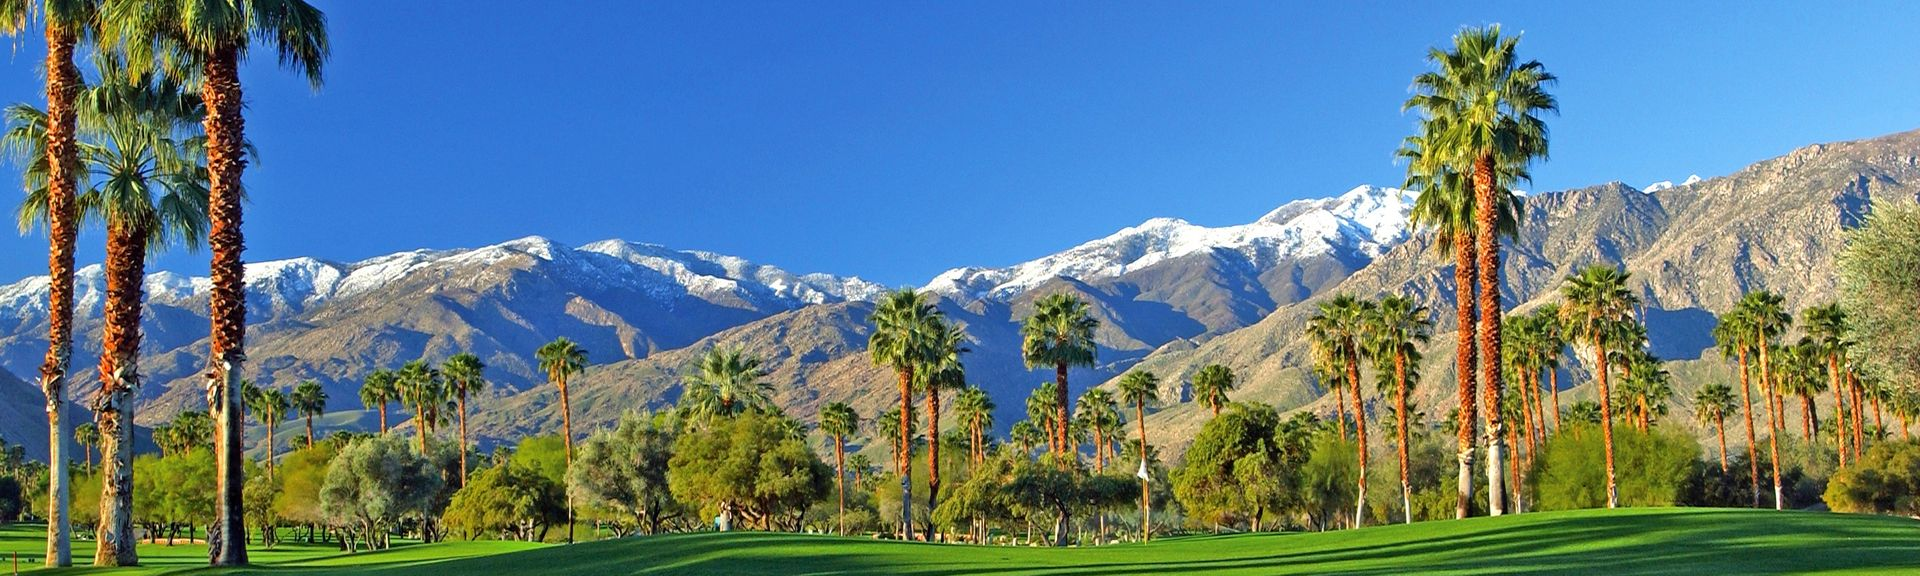 Palm Valley Country Club, Palm Desert, California, United States of America